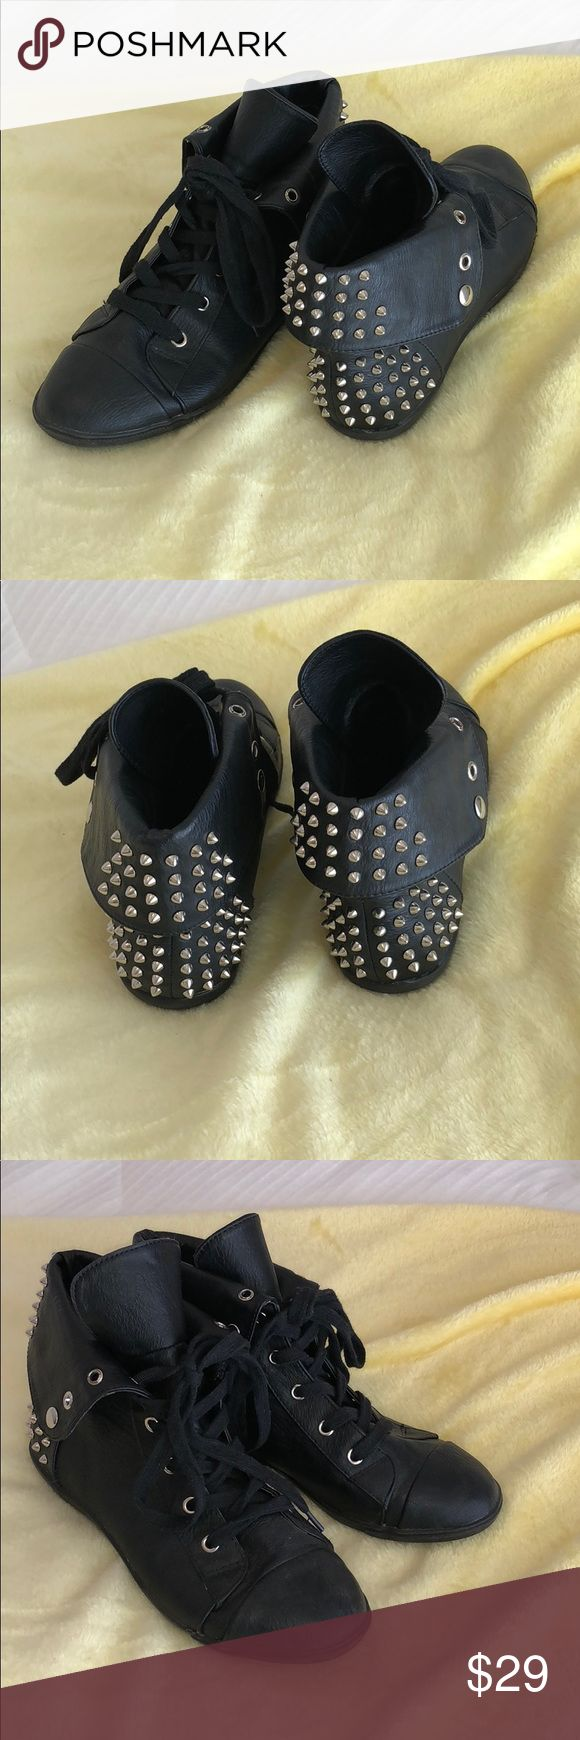 Black gold studded sneakers. Trendy Excellent condition.  Tie up studded sneakers.  Pet free Smoke free home. MC Vintage Shoes Sneakers